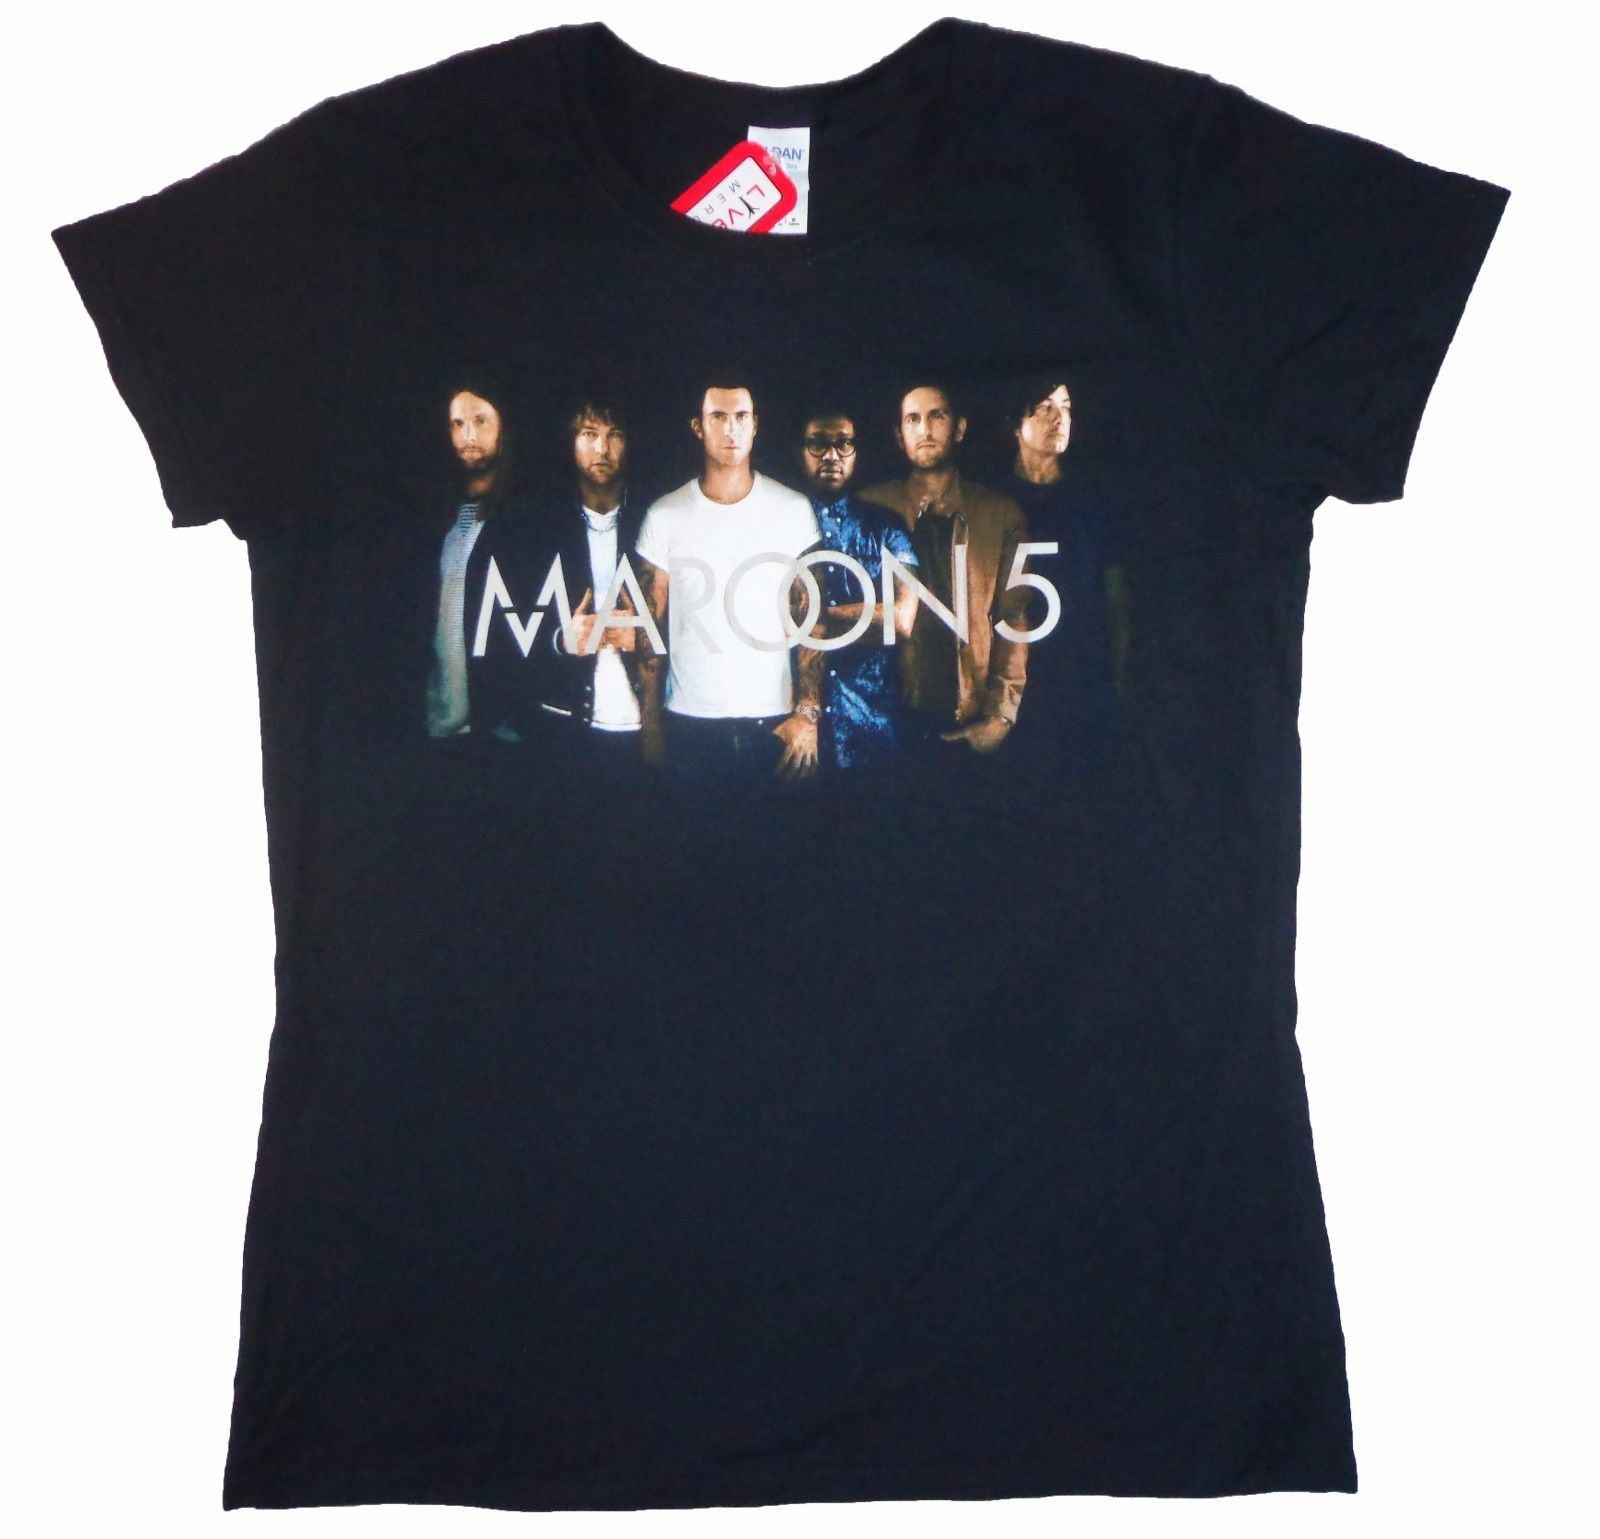 MAROON 5 - Group Logo - T SHIRT Top S-M-L-XL Brand New Official T Shirt Top